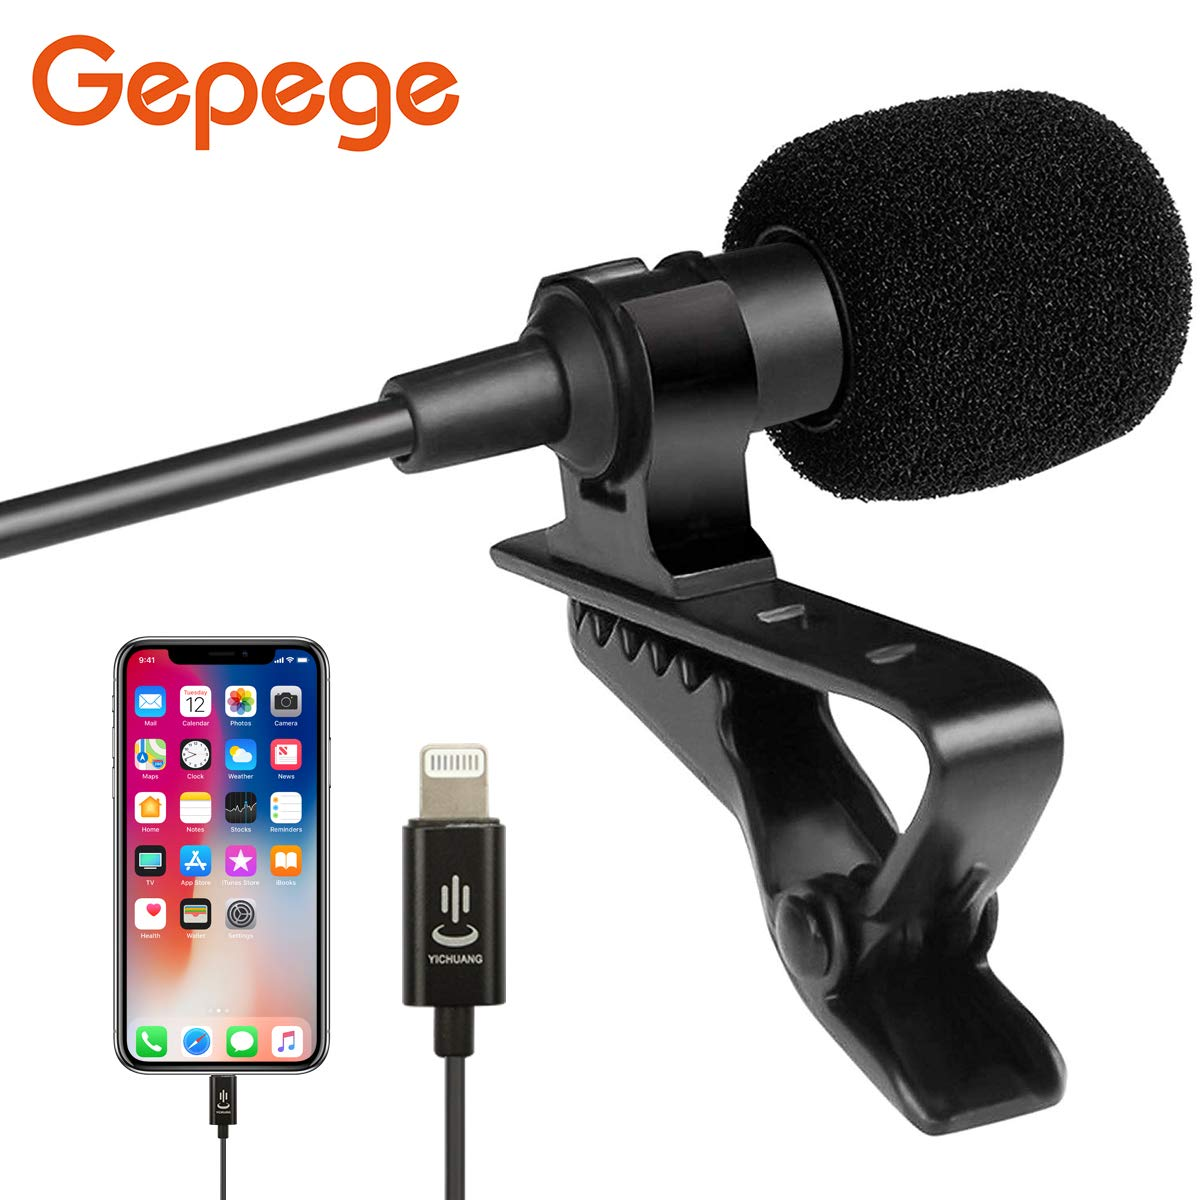 Gepege Microphone Professional for iPhone Grade Lavalier Lapel Omnidirectional Phone Audio Video Recording Lavalier Condenser Microphone (iOS 6.0m) by Gepege